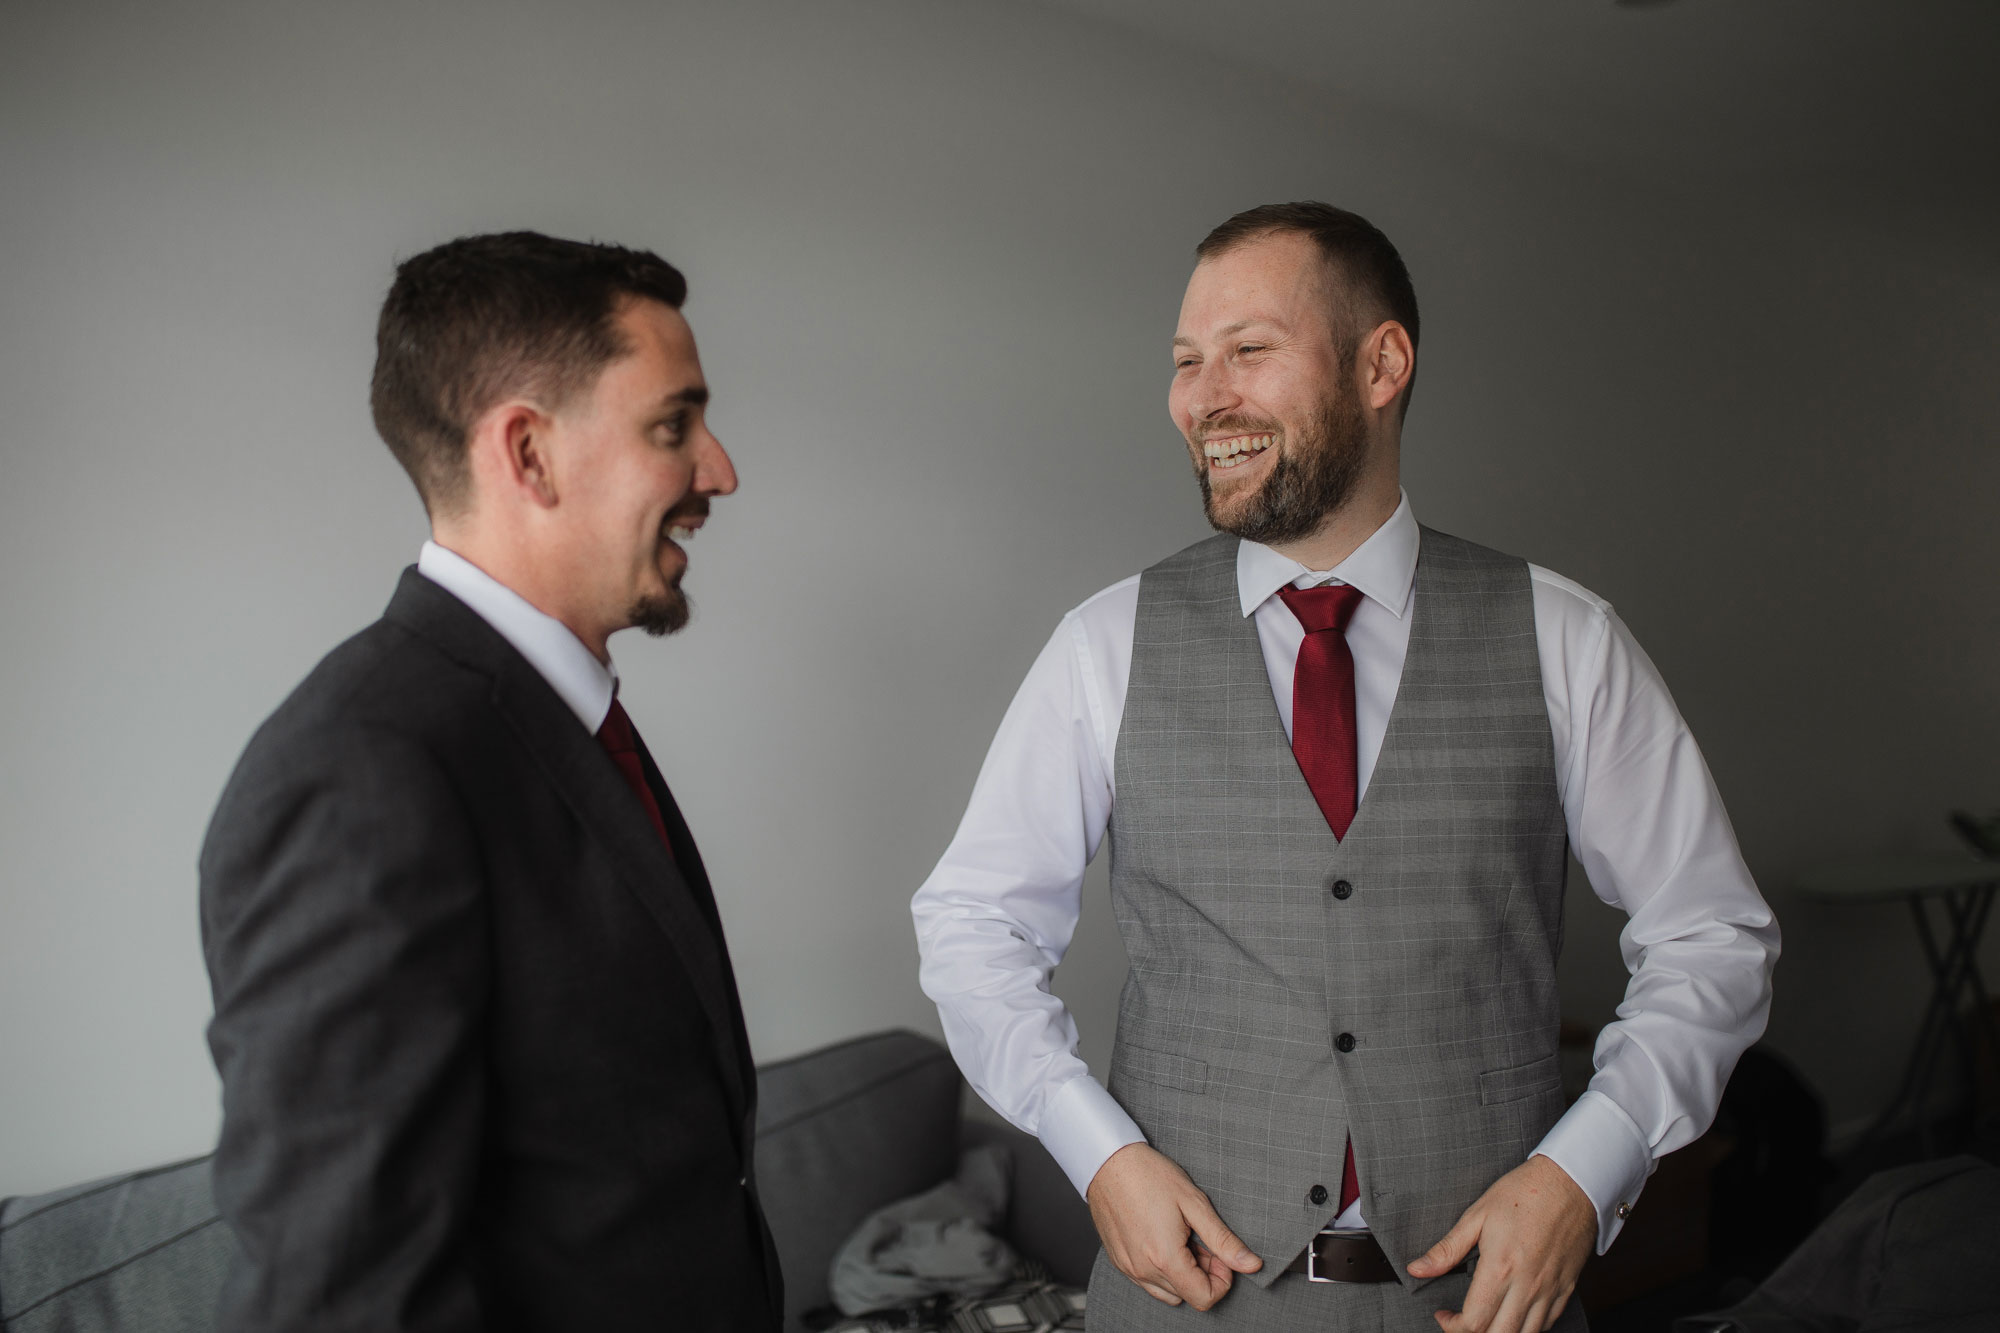 groom and groomsman smiling